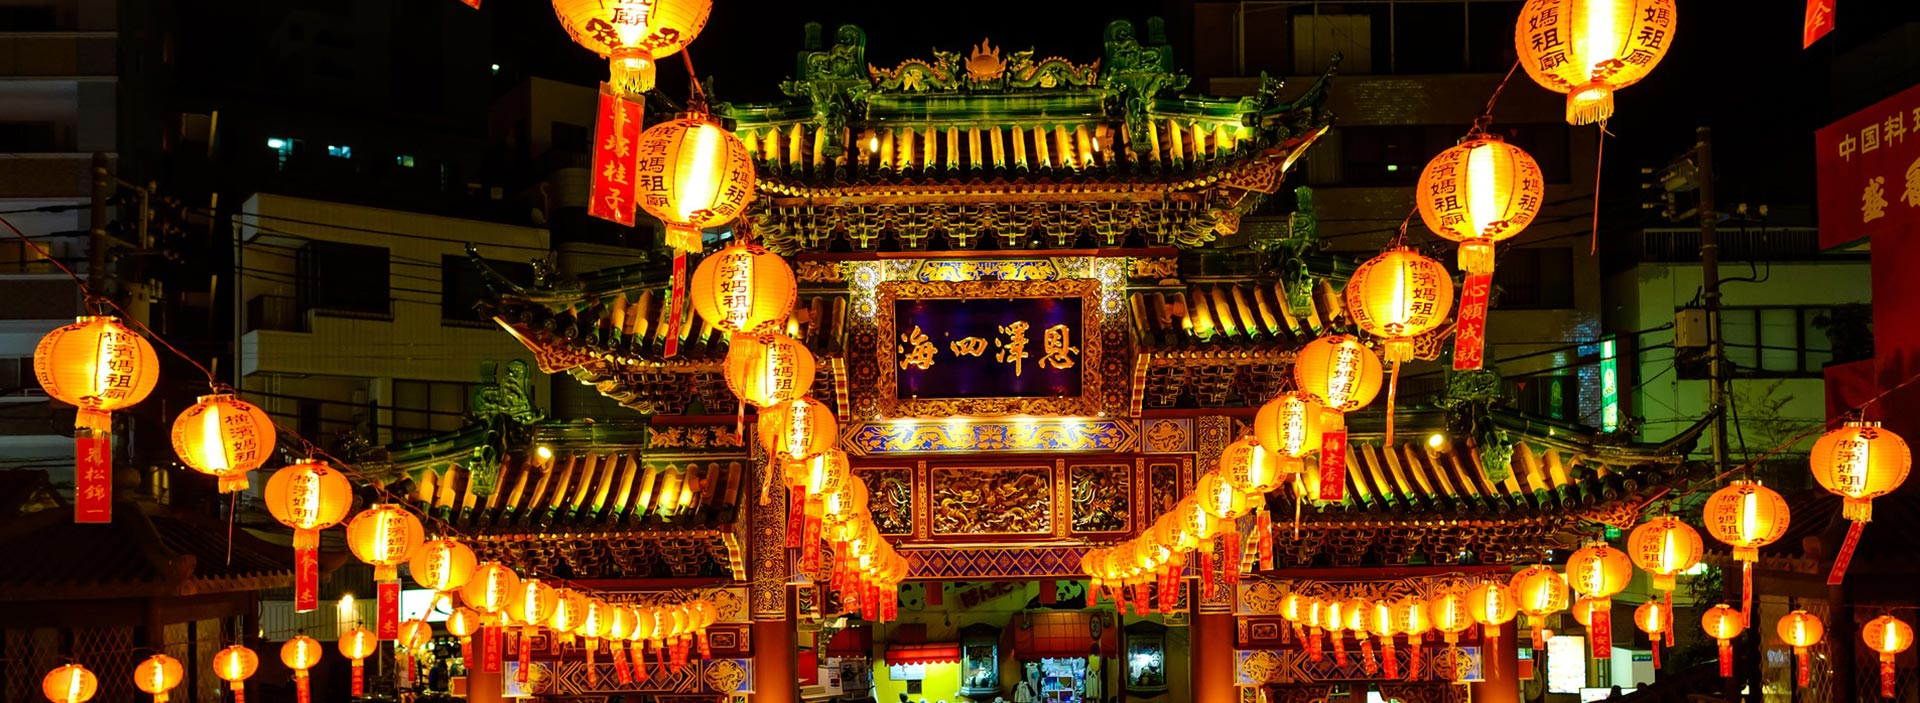 Yokohama Chinatown Temple Lantern at night